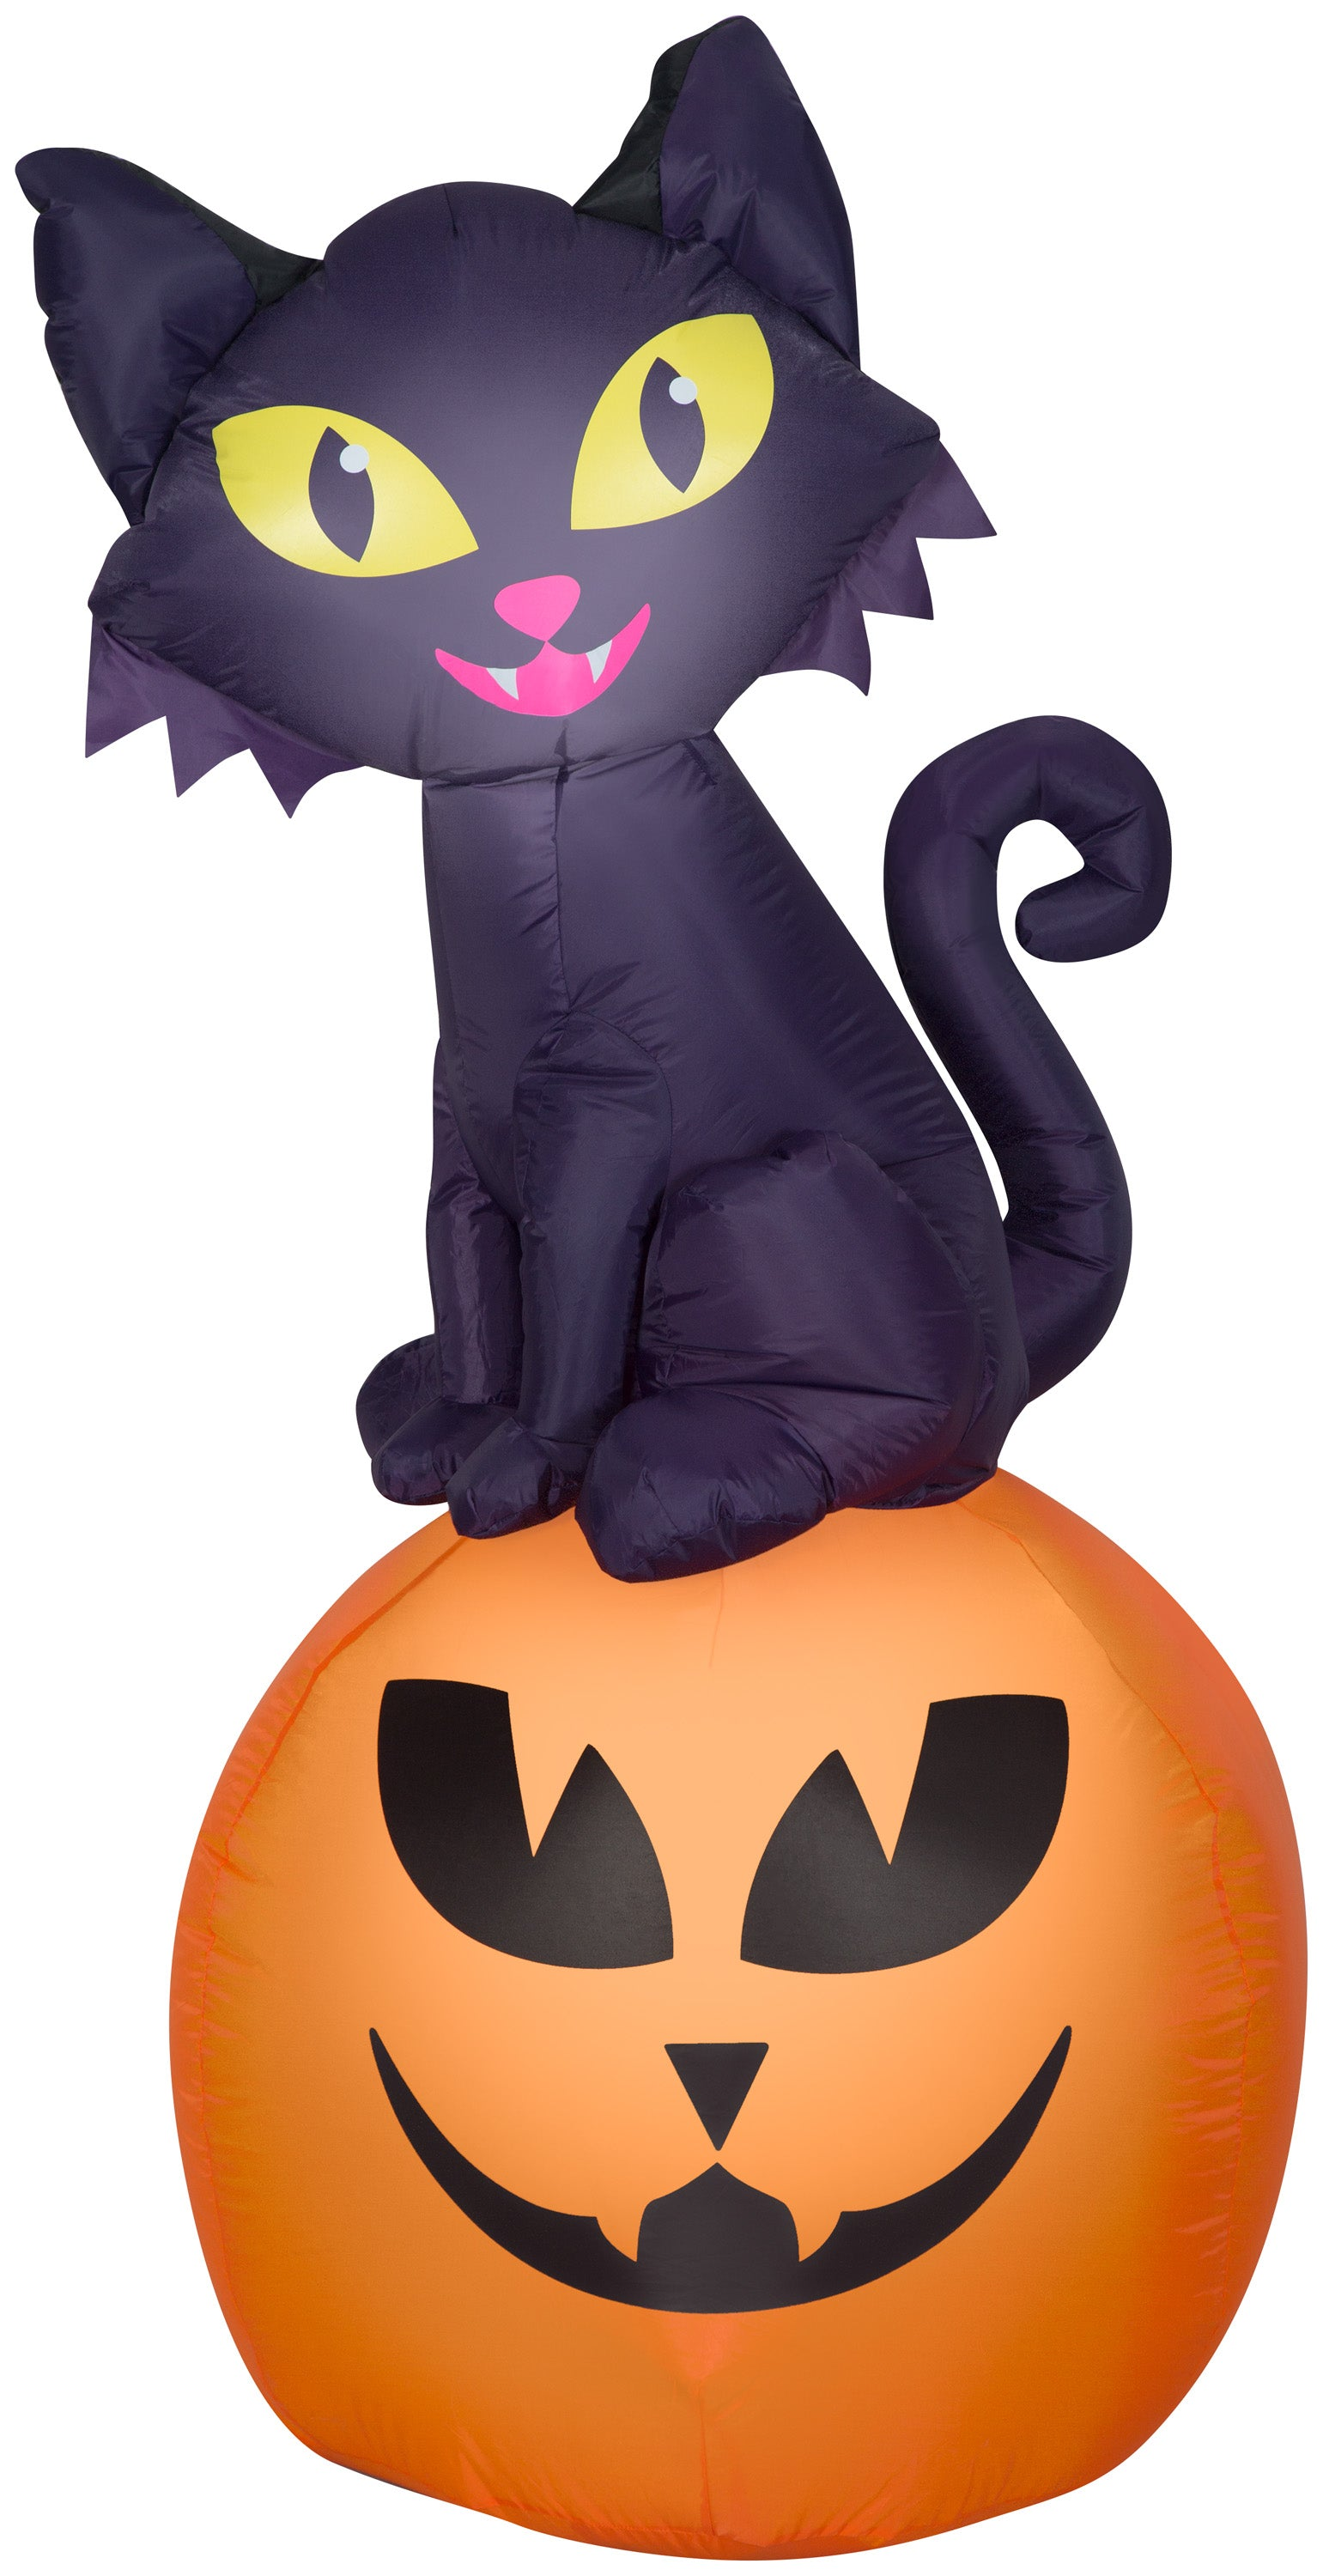 Gemmy Airblown Inflatable Halloween Cat on Pumpkin 5.5 ft